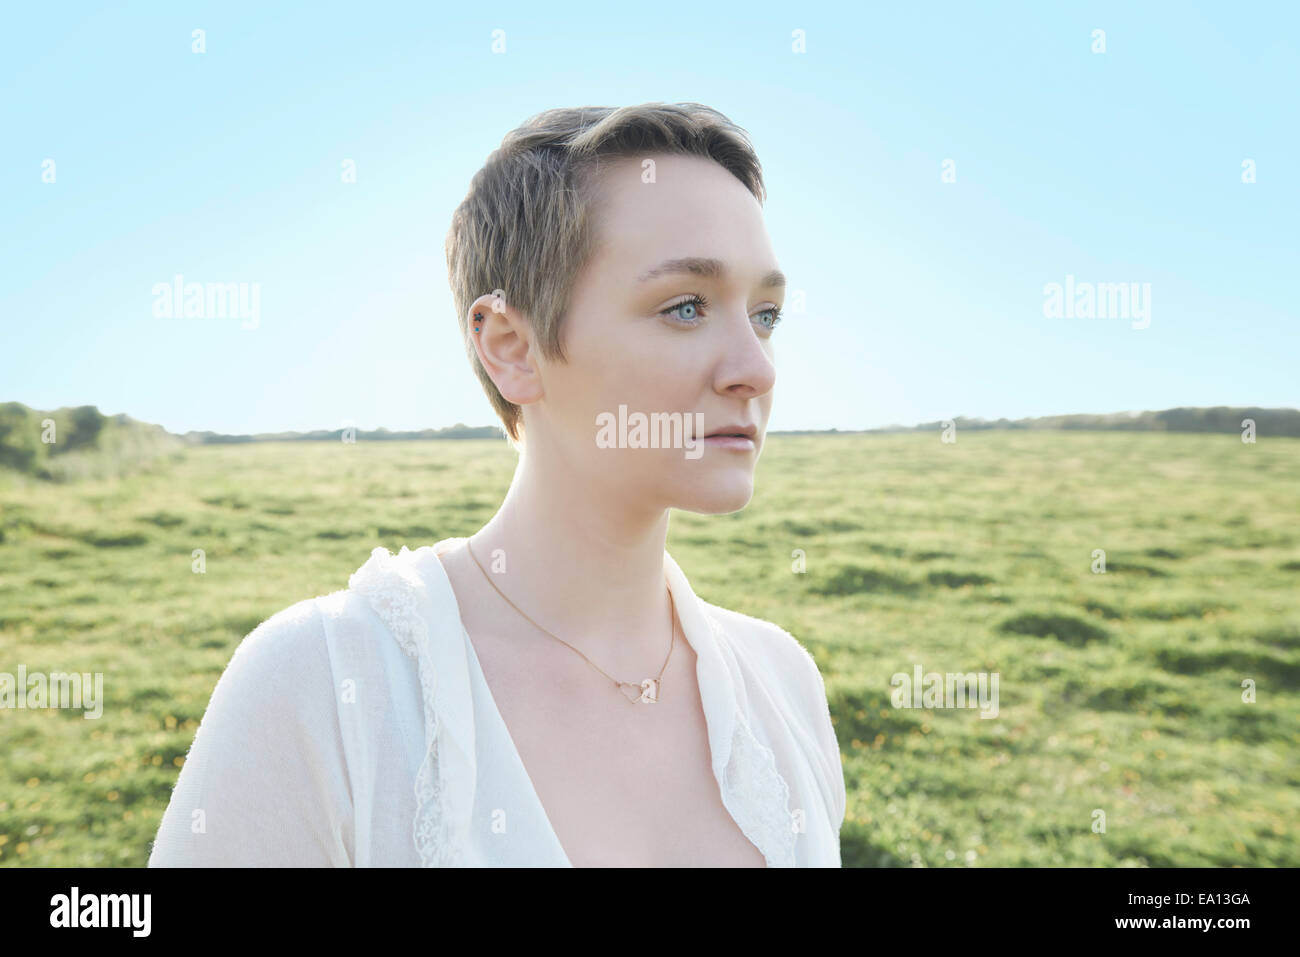 Portrait of young woman gazing in field - Stock Image